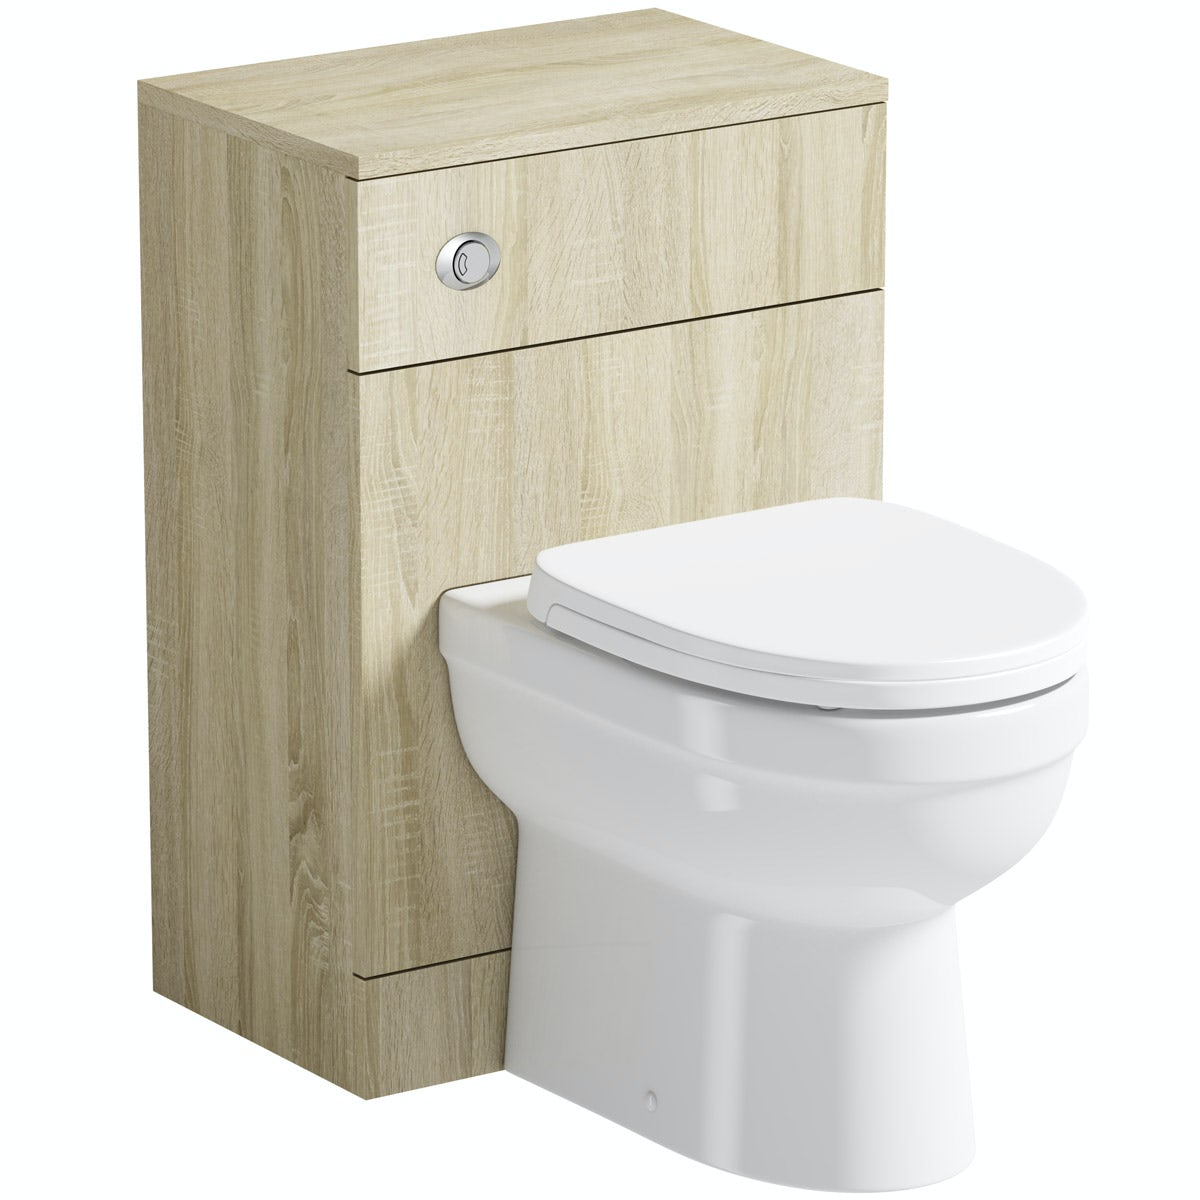 Orchard Eden oak back to wall unit and toilet with seat